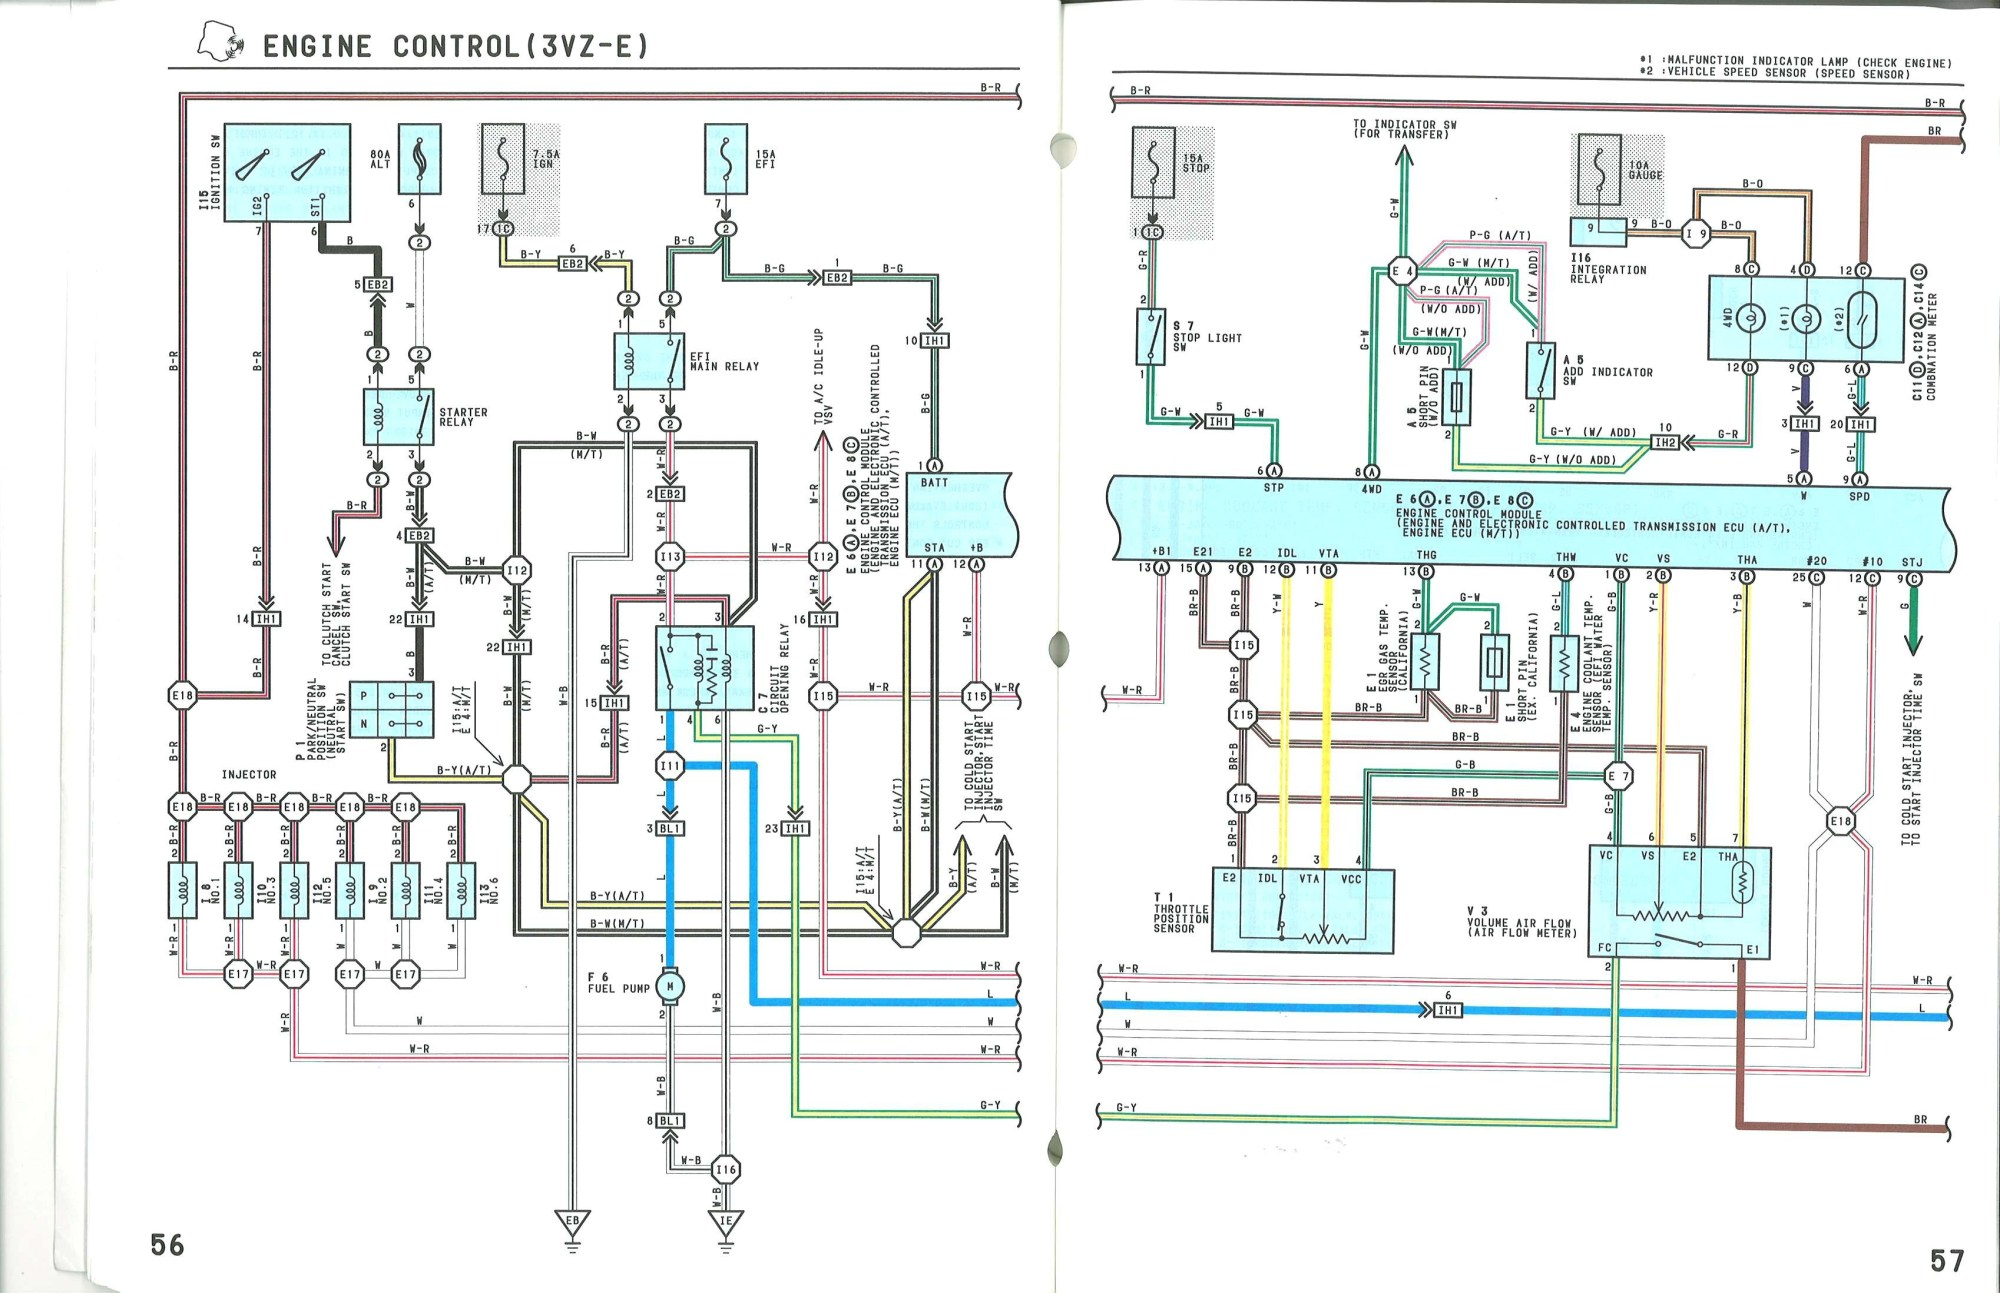 hight resolution of 1989 toyota pickup engine diagram wiring diagram